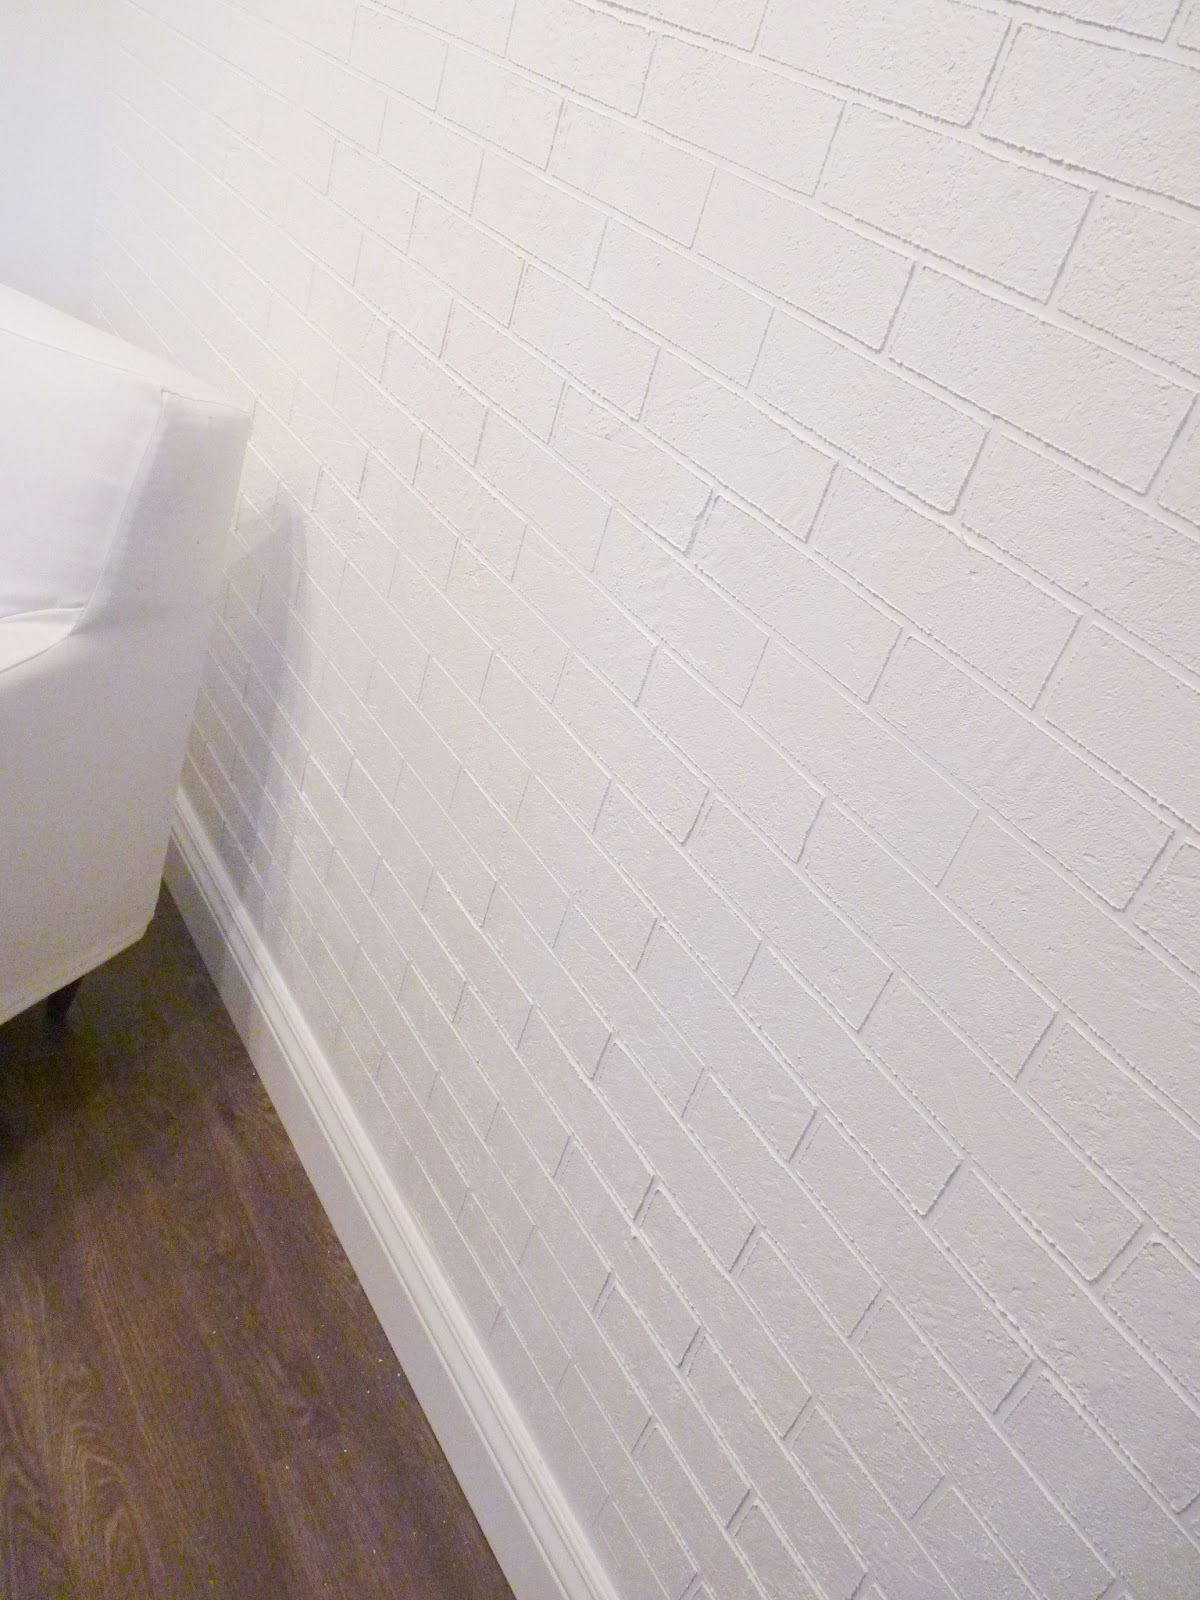 d i y   d e s i g n: How To Make a Faux Exposed Brick Wall